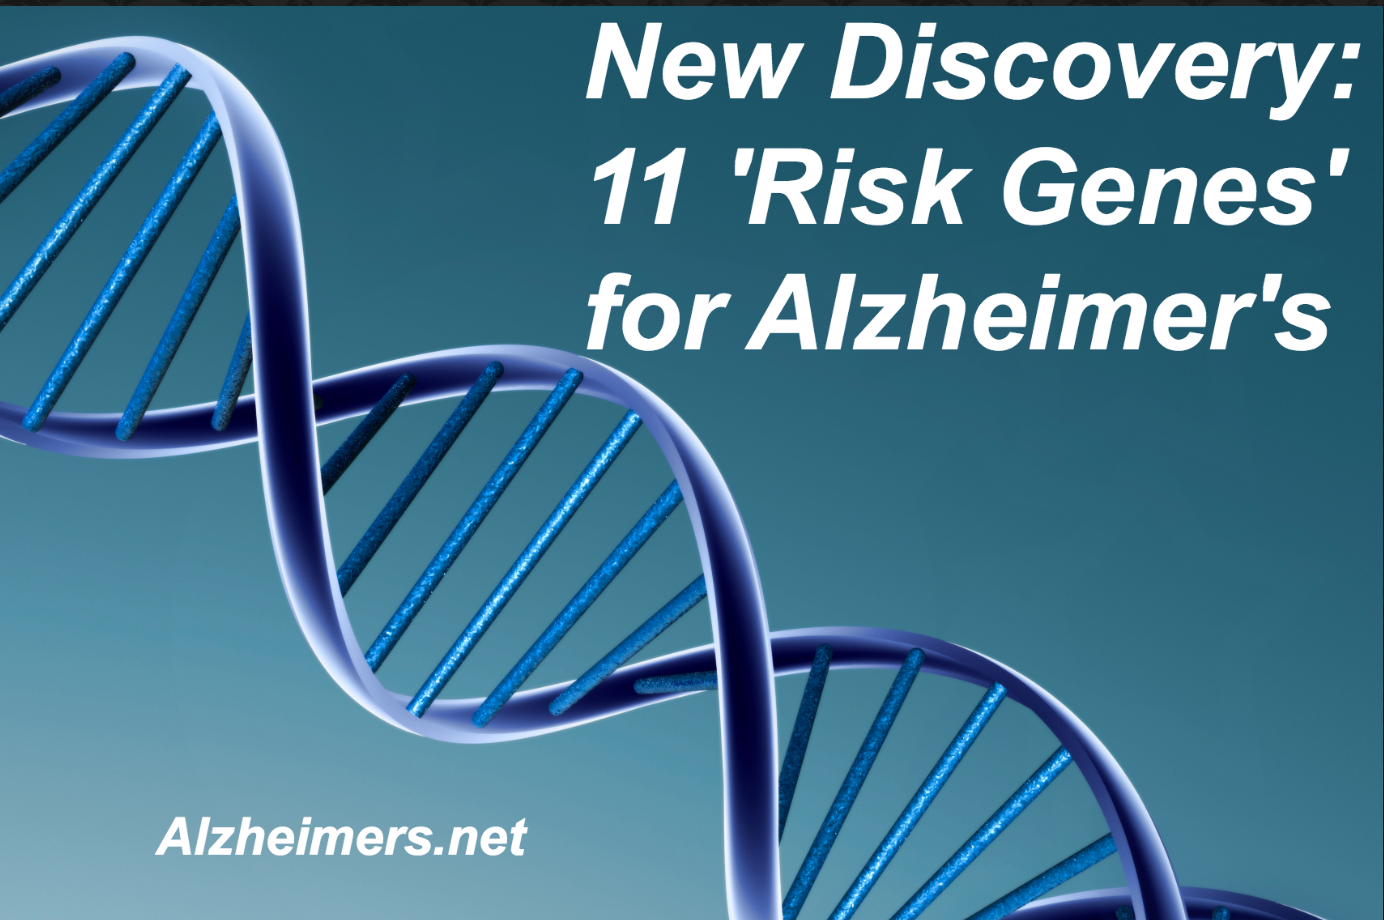 New Discovery: 11 'Risk Genes' for Alzheimer's